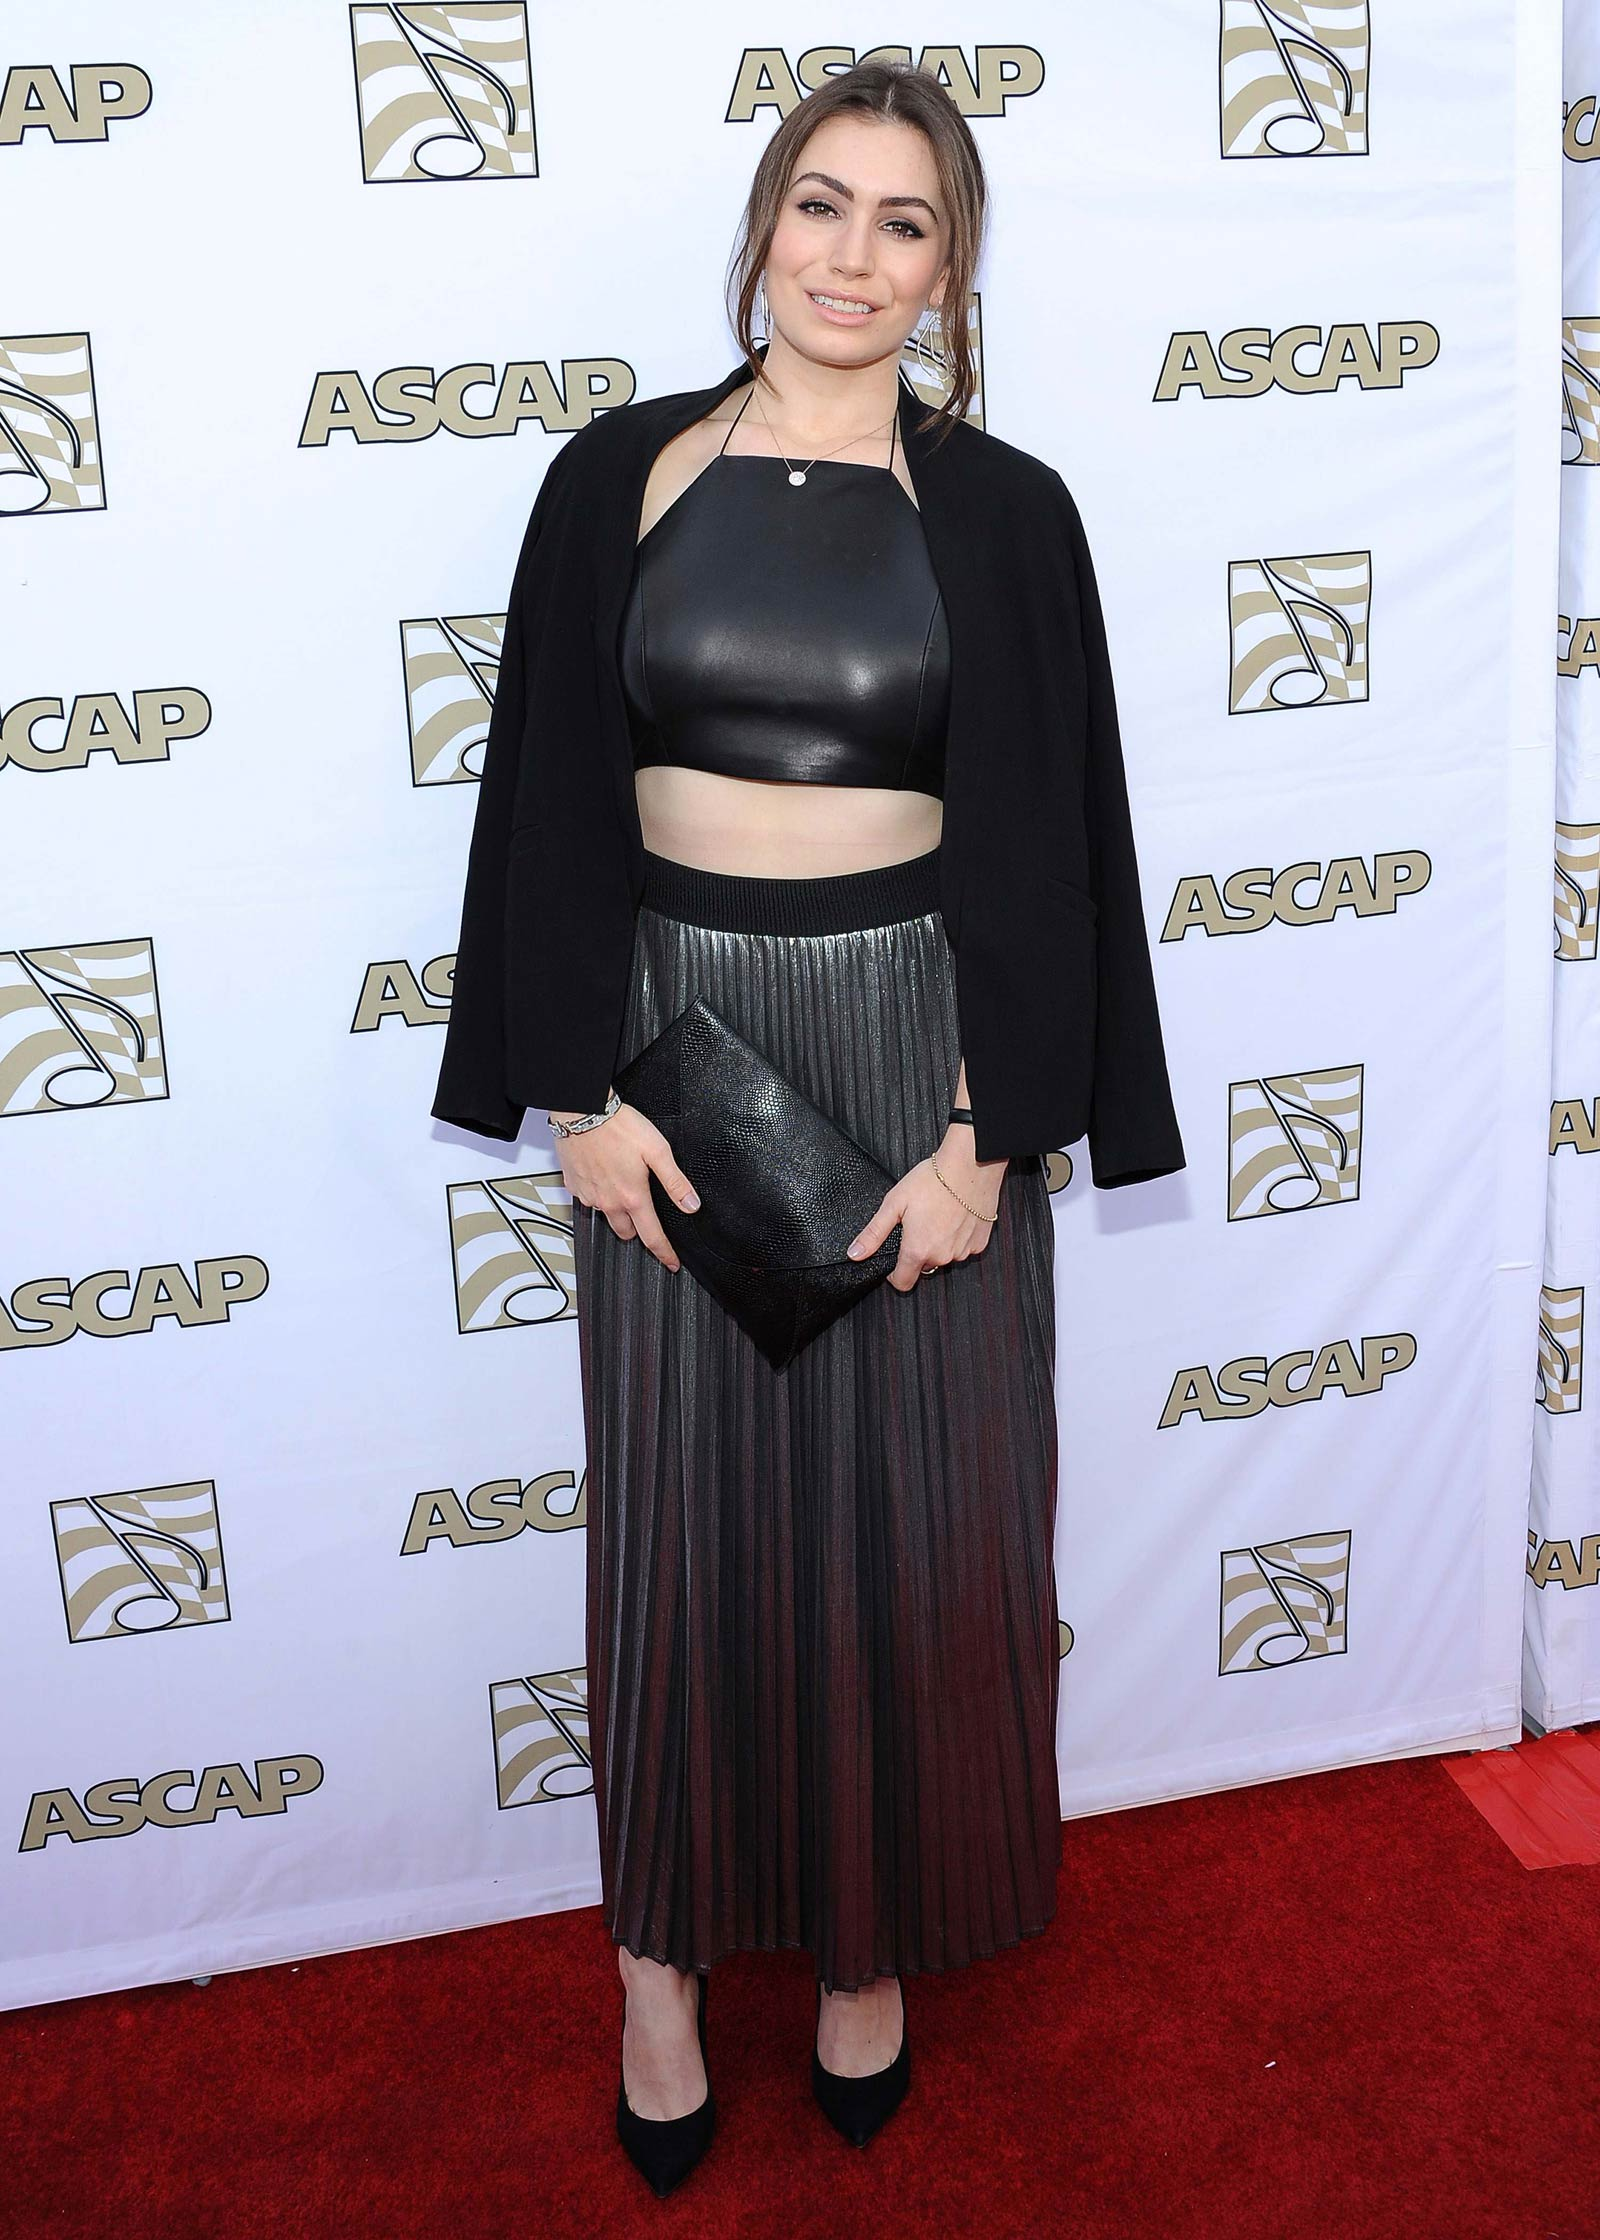 Sophie Simmons attends 32nd Annual ASCAP Pop Music Awards